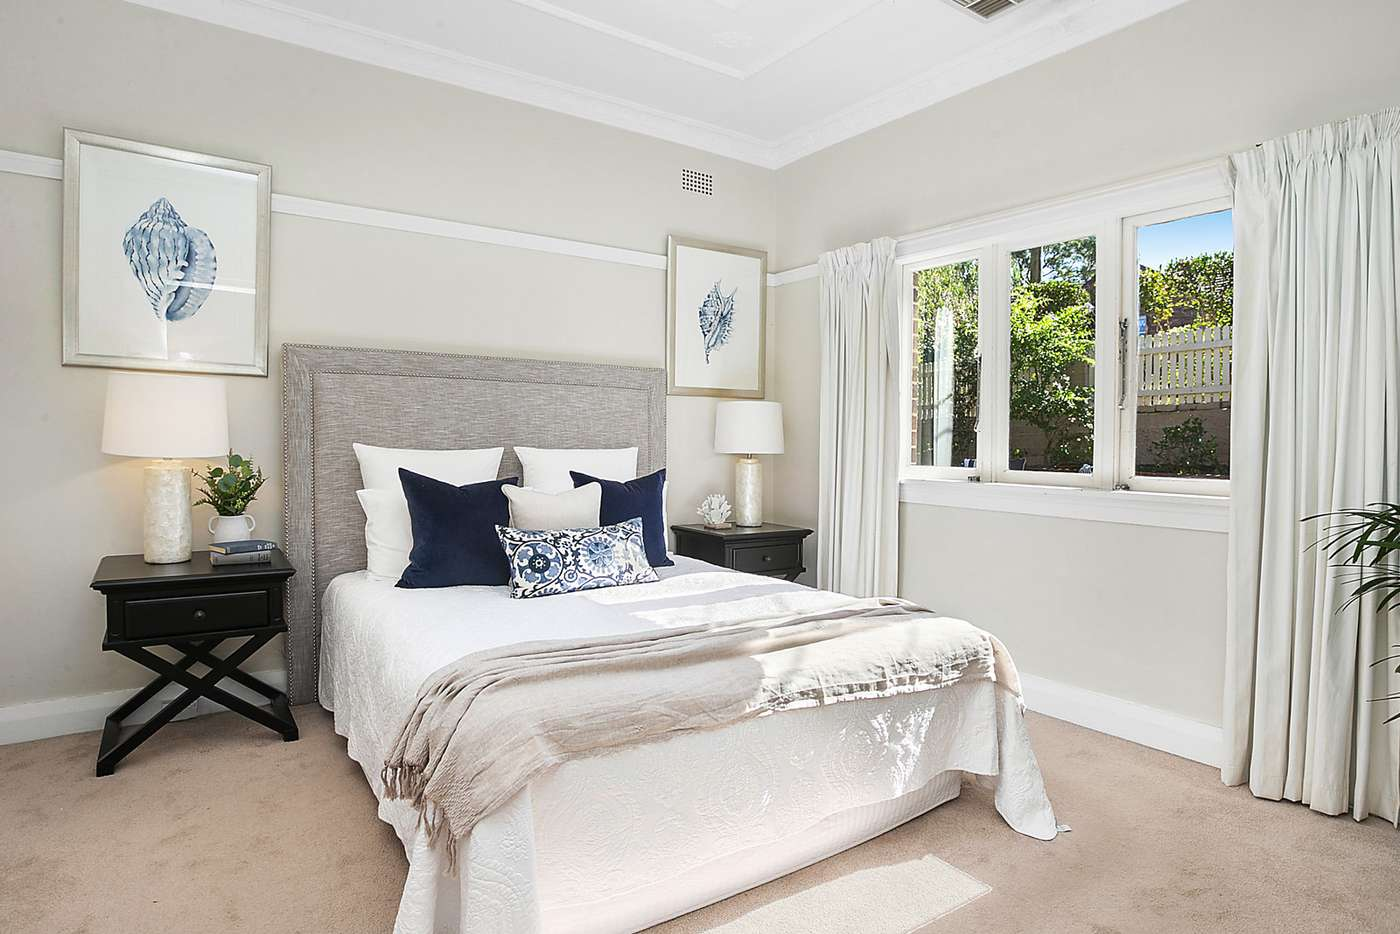 Sixth view of Homely house listing, 47 Wilfred Avenue, Chatswood NSW 2067